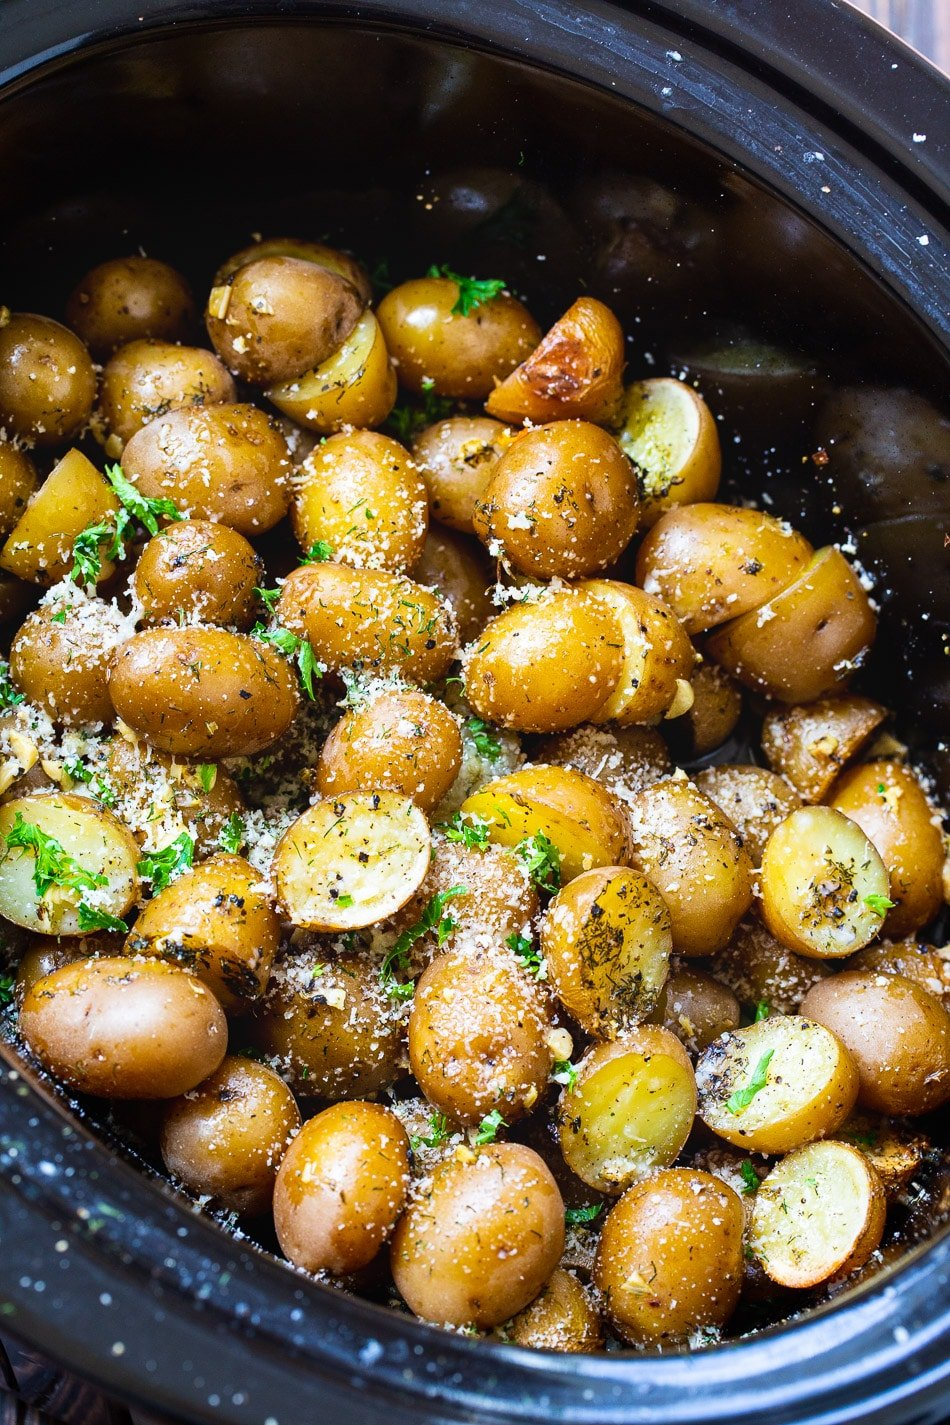 Slow Cooker Garlic Parmesan Potatoes in black crock pot.